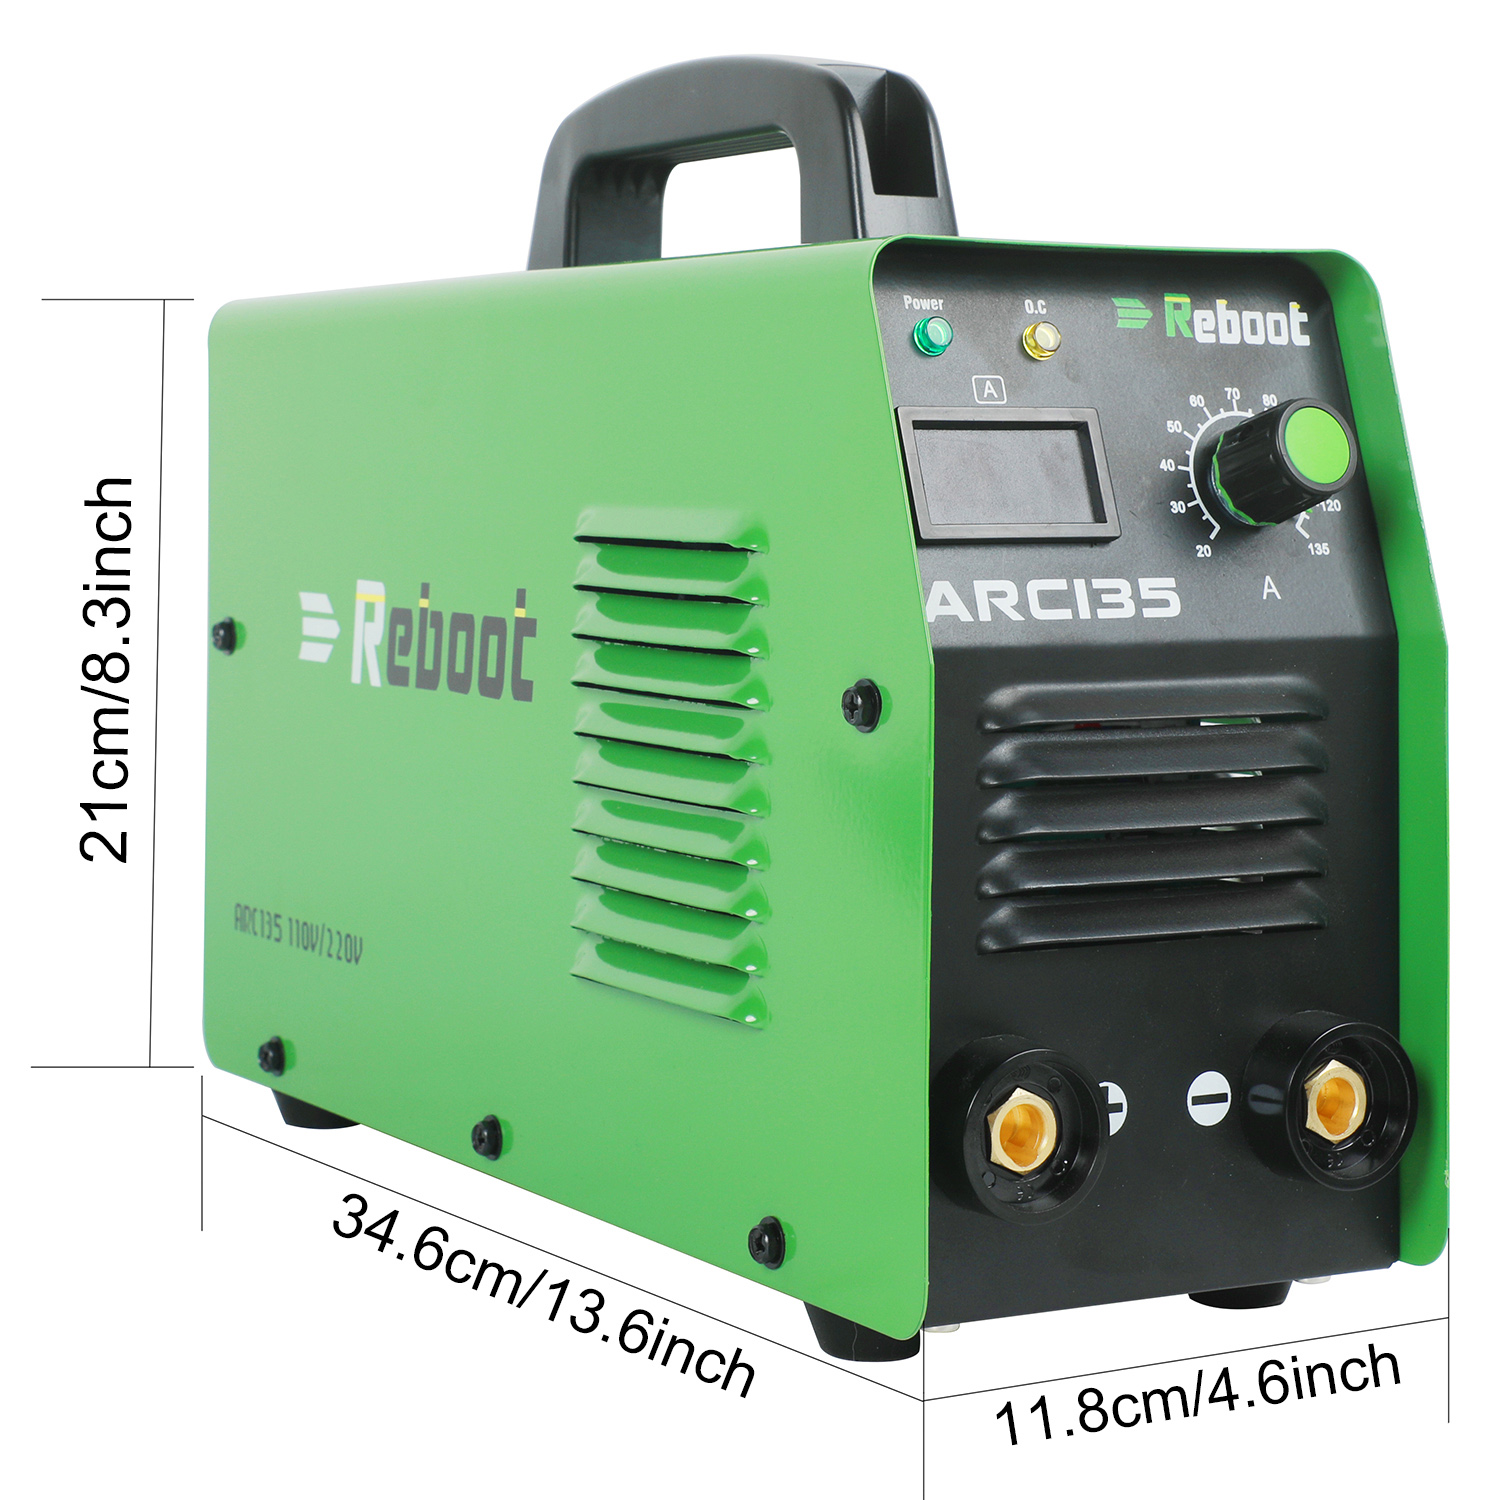 Reboot ARC Welder  ARC-135 Welding Tool DC 220V Stick Welder 135 Amp Welding Machine Portable Mini MMA Welder Inverter Welding